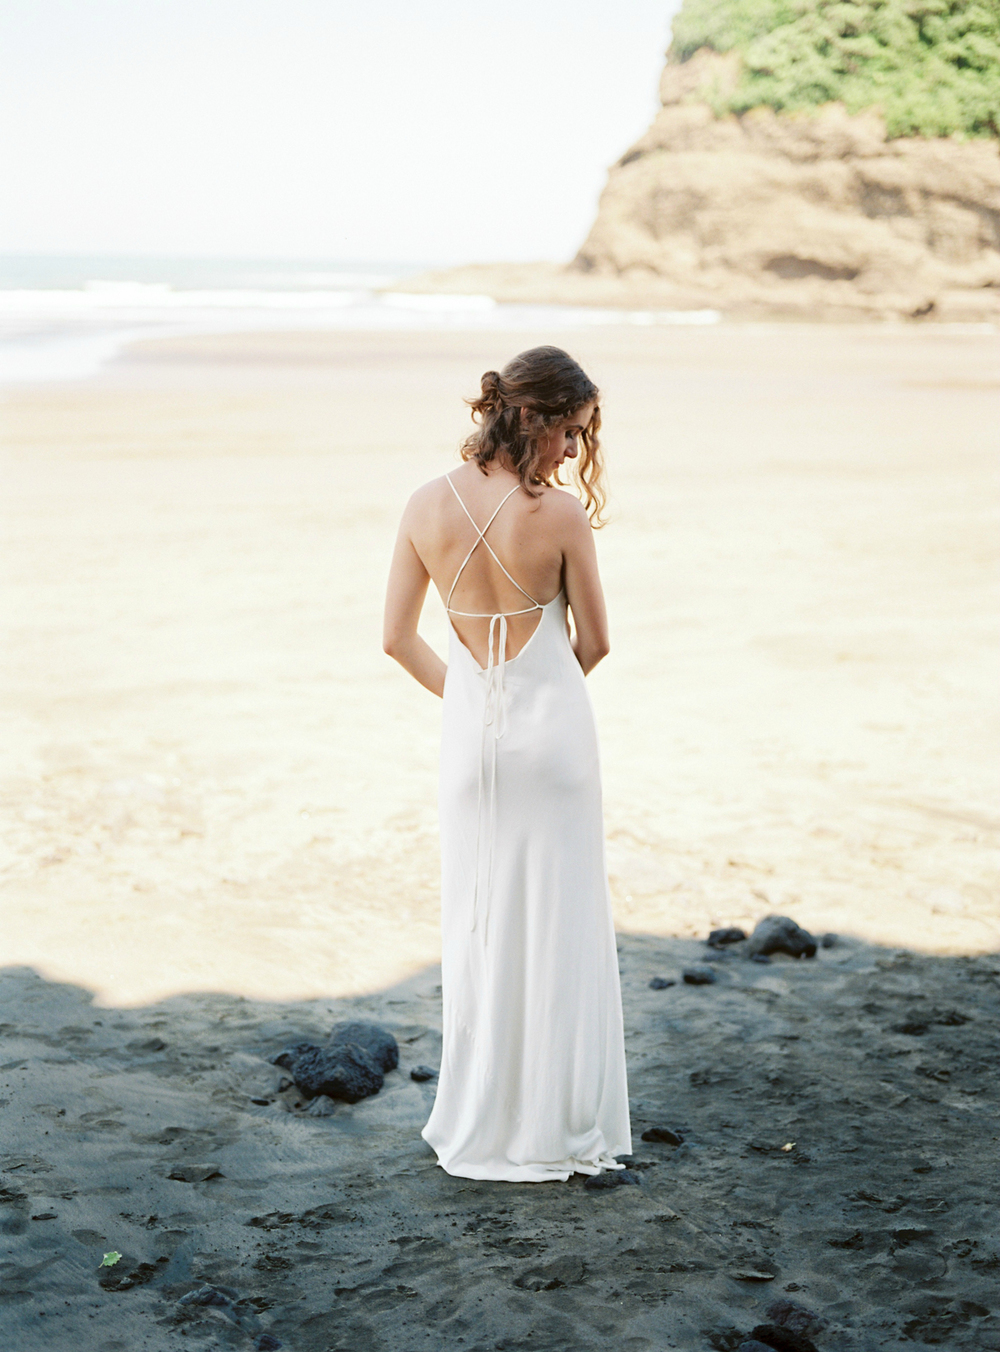 Bare back simple dress for beach wedding